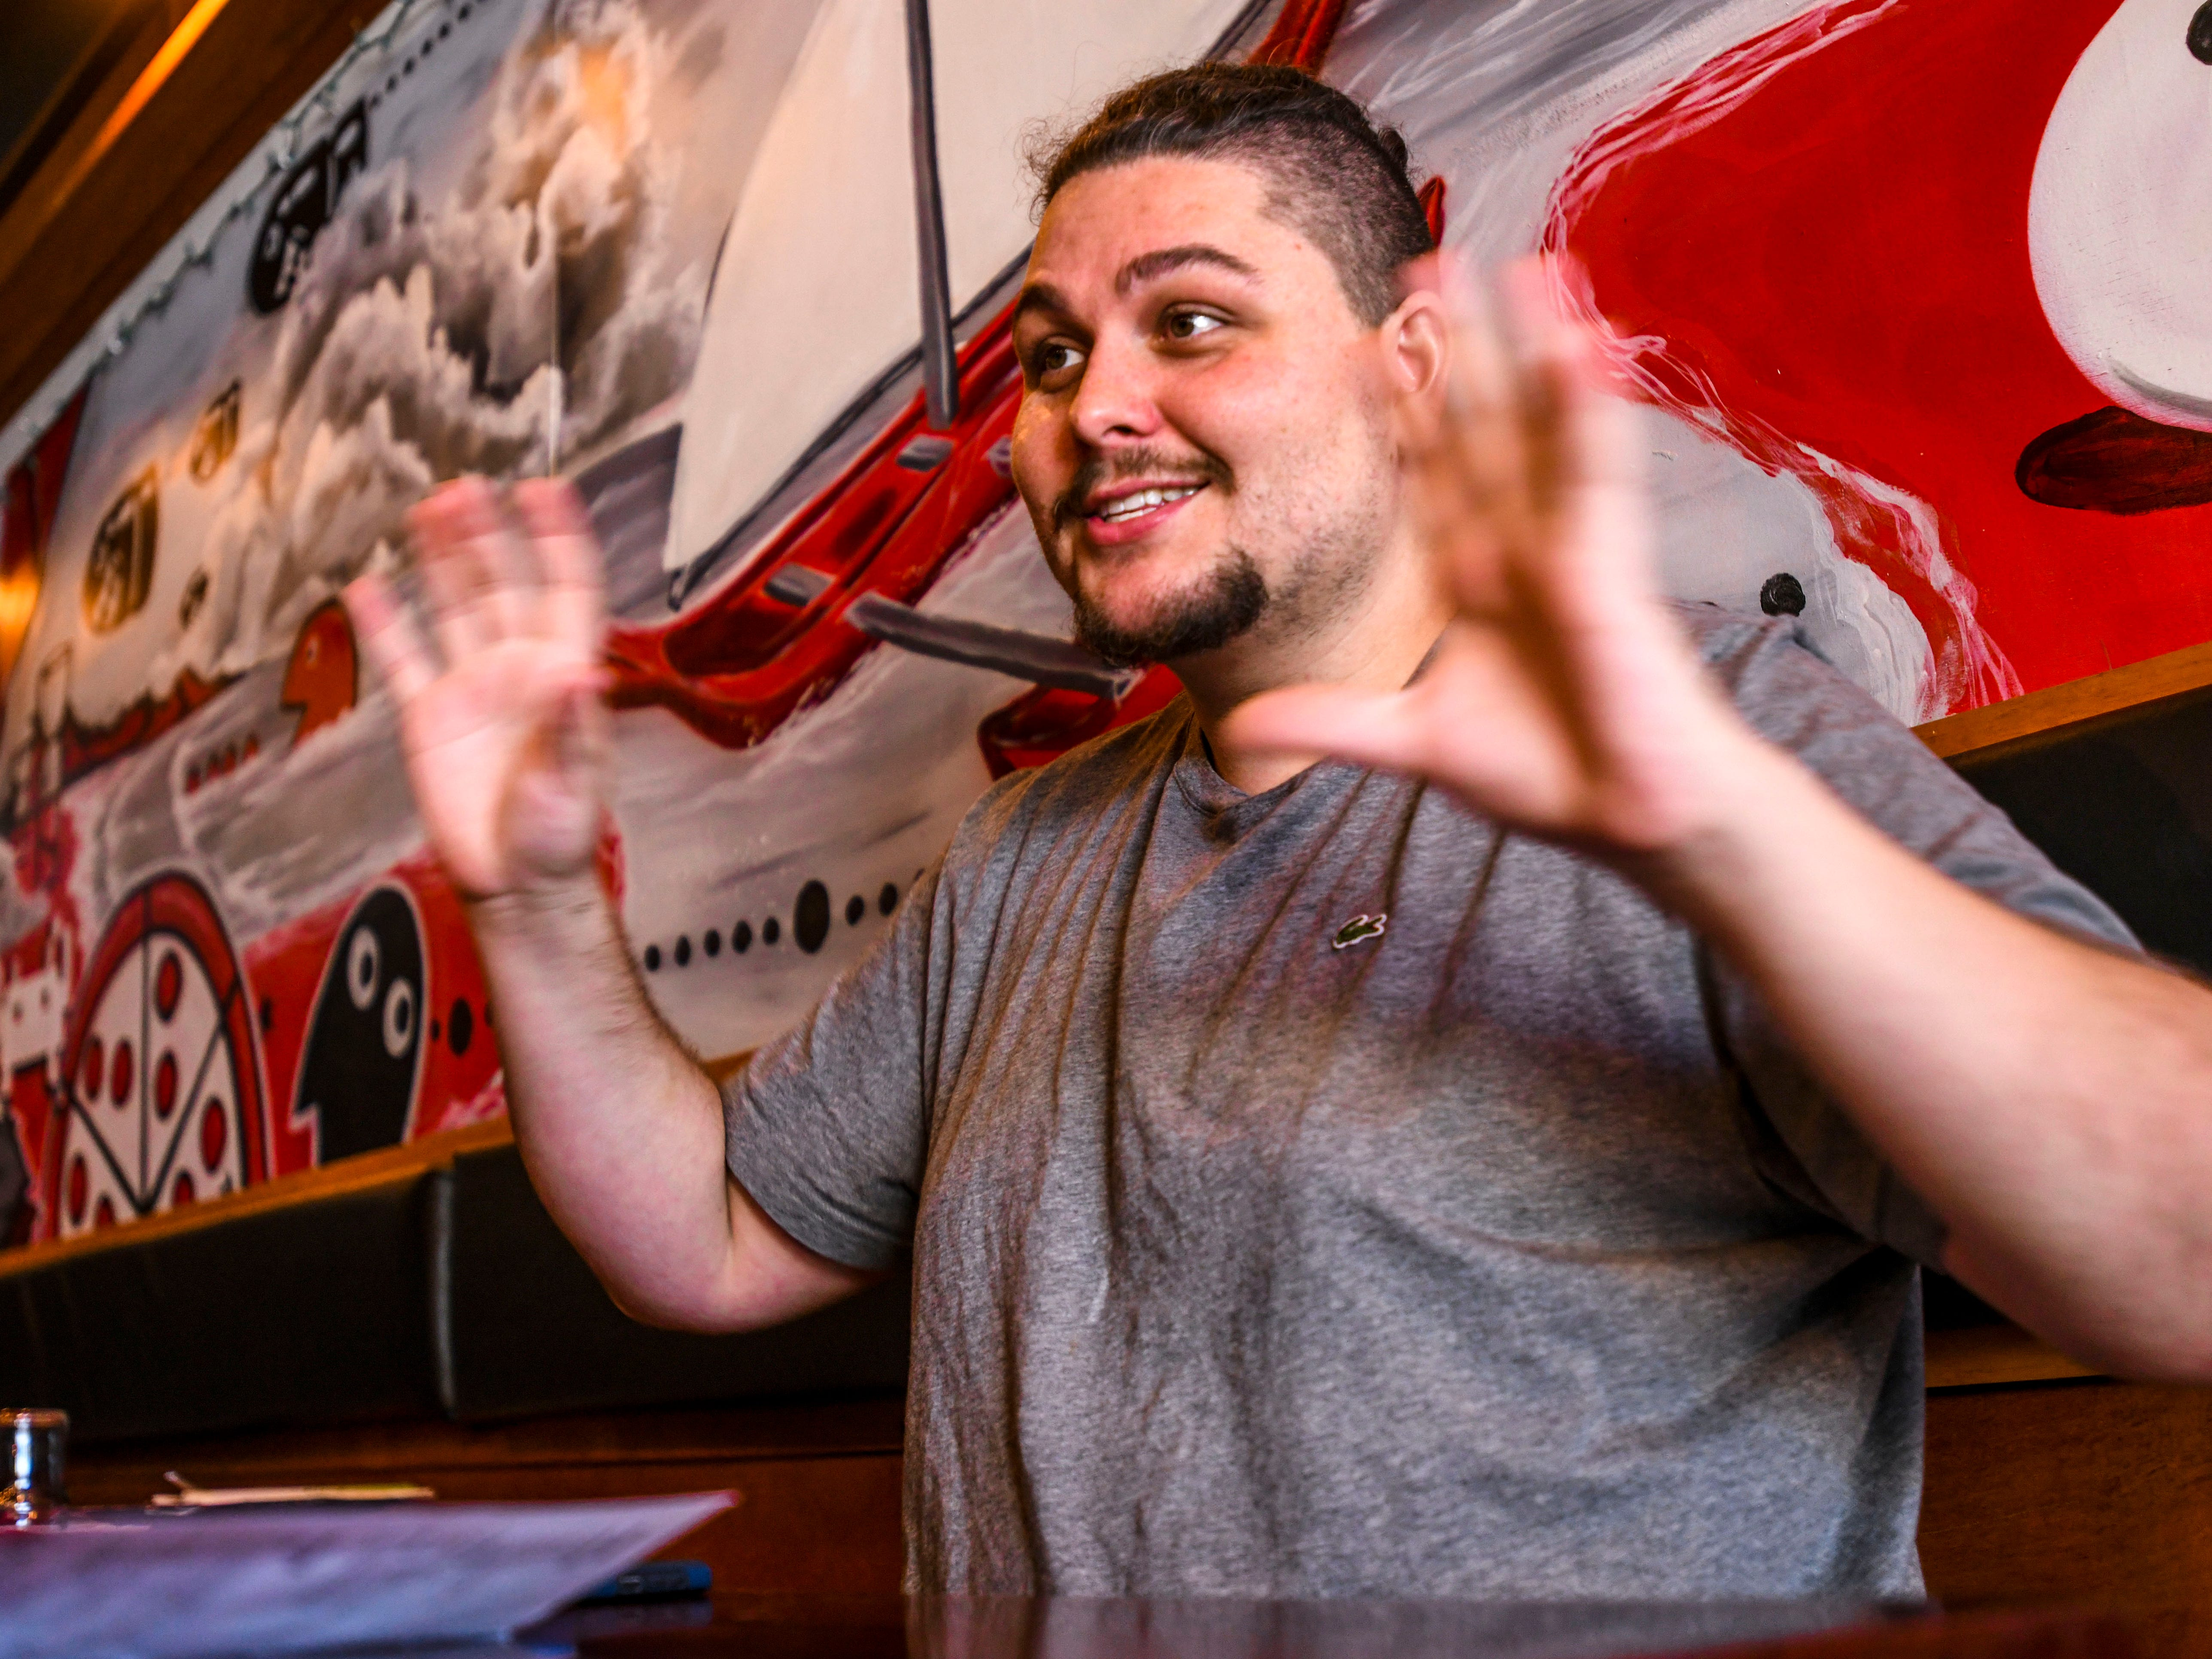 Dylan Saad, chef and owner of Primo Pizzakaya, describes the atmosphere diners may experience during their visit to his Tumon pizzaria-type restaurant during an interview on Wednesday, Jan. 2, 2019.